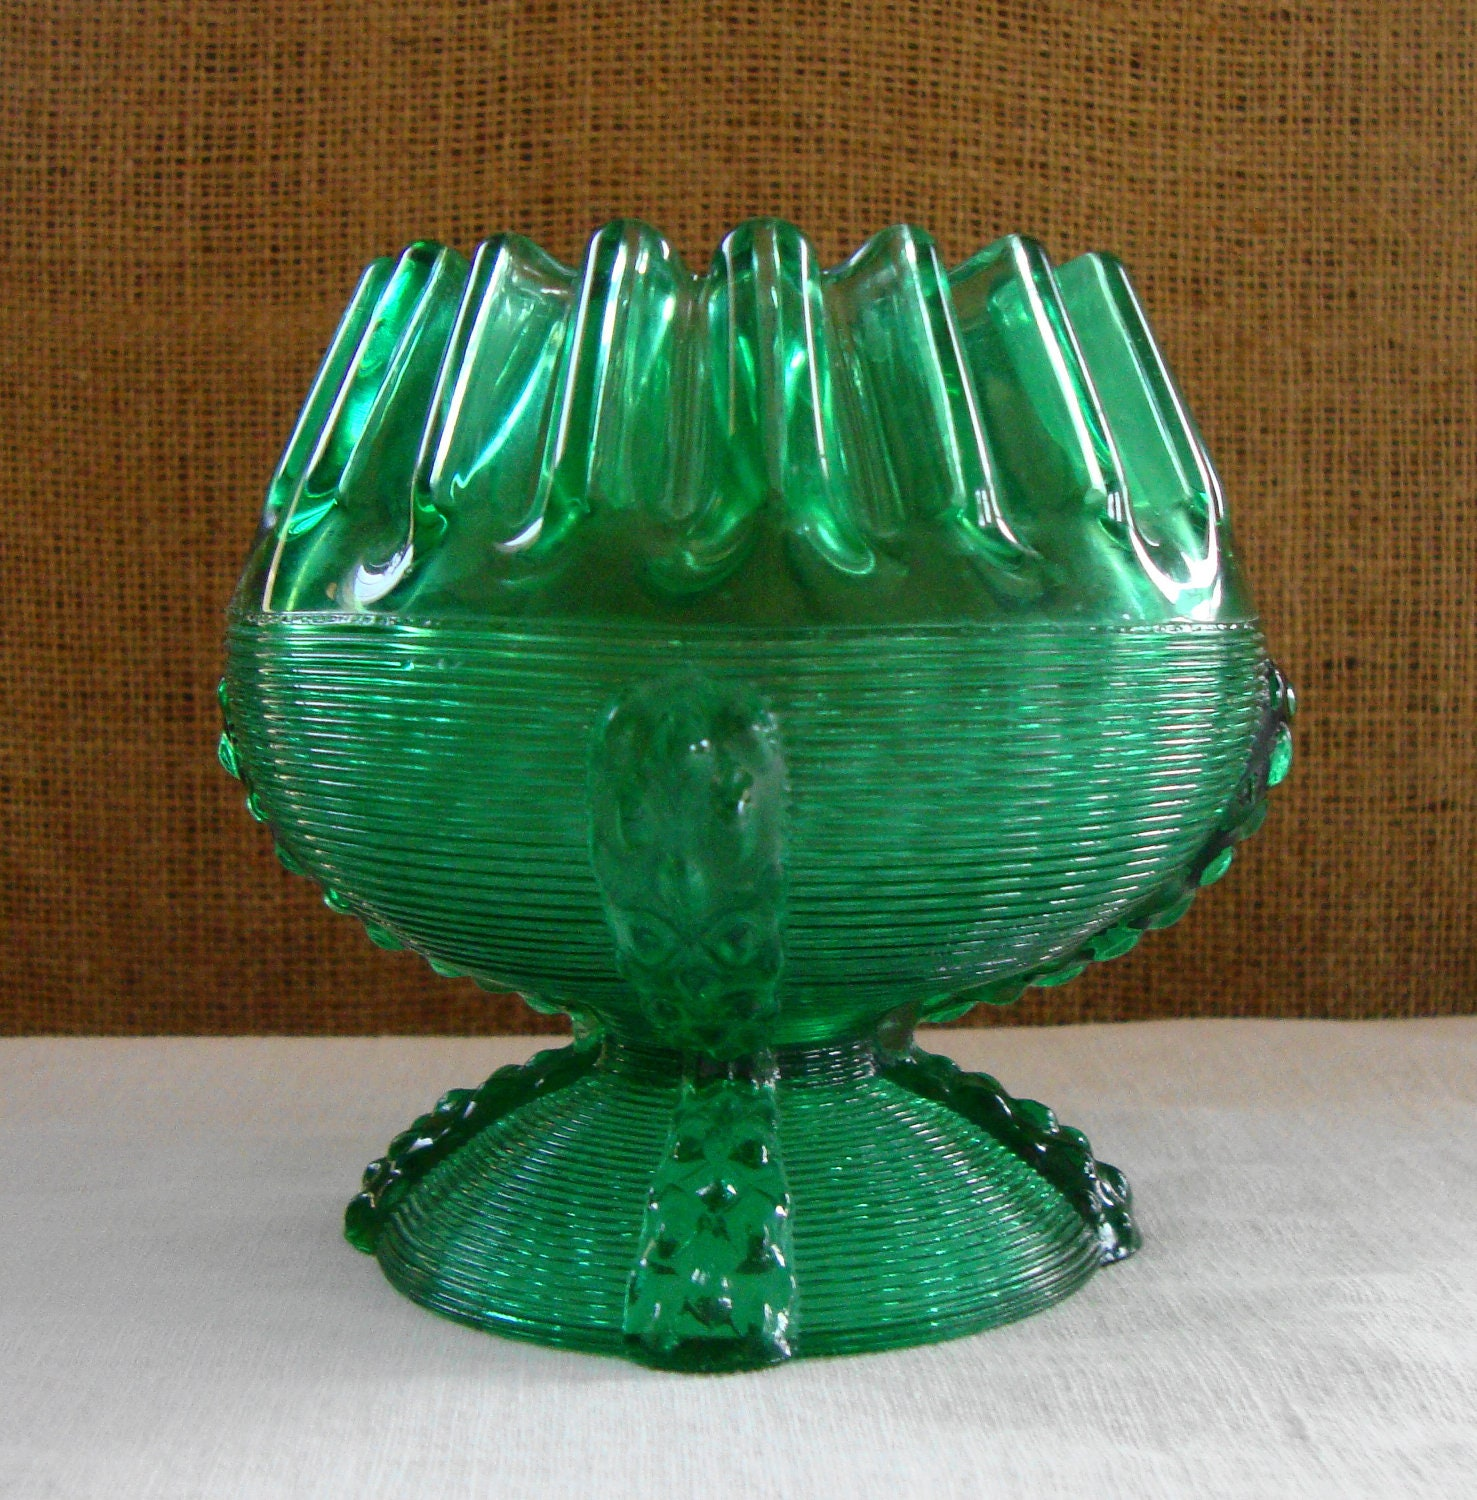 ANTIQUE DEPRESSION GLASS Art Deco Emerald Green By